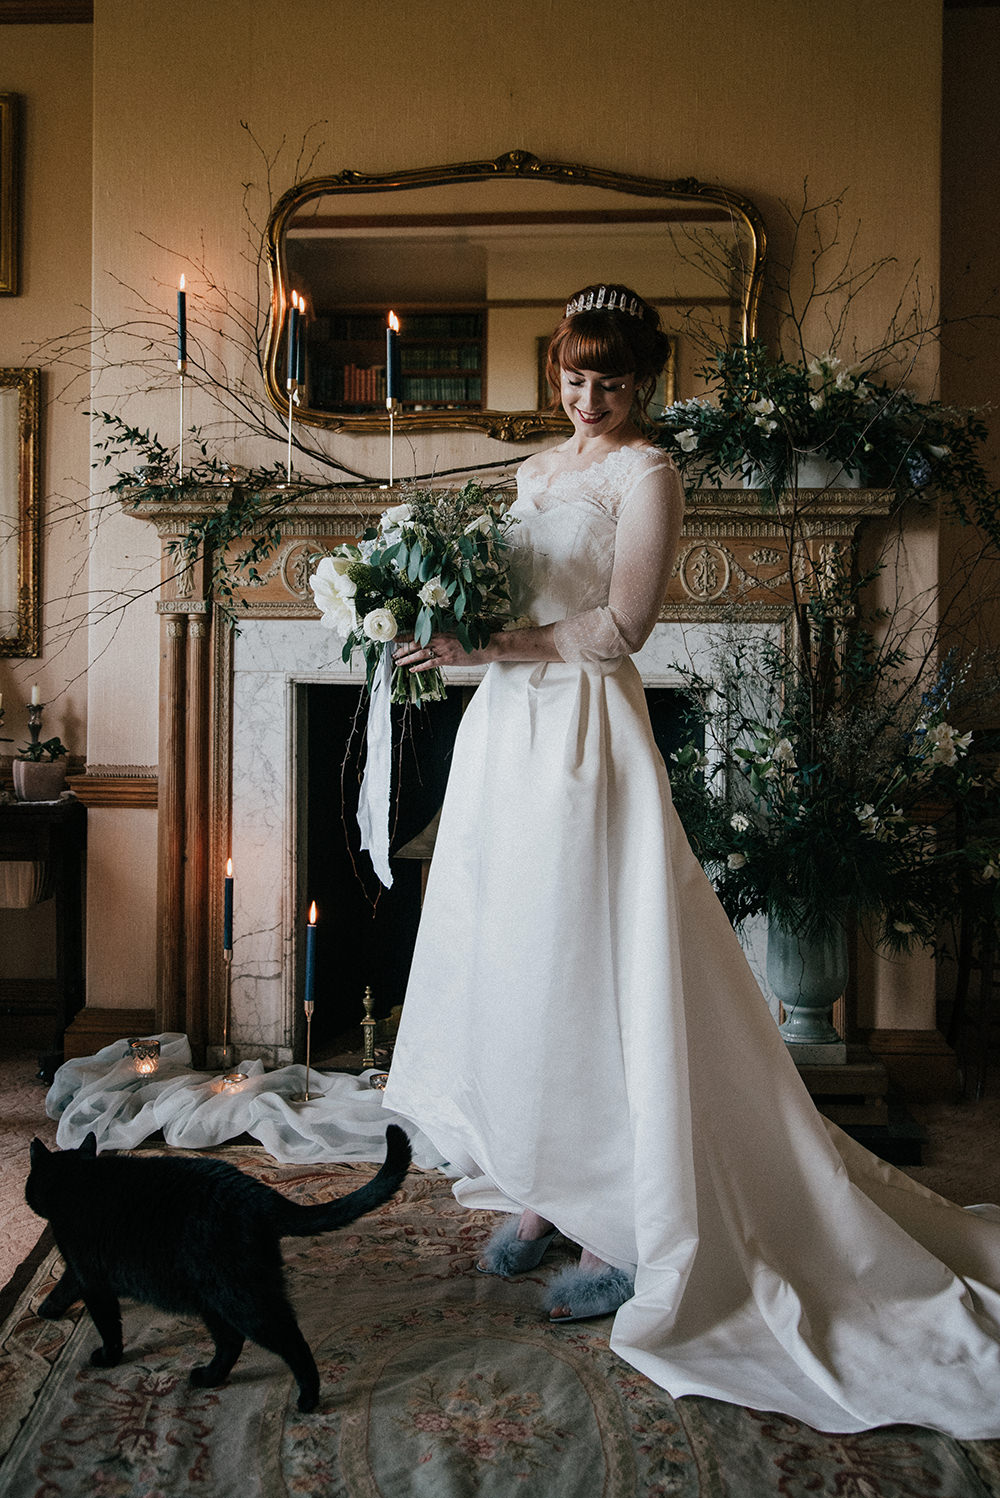 Bride Bridal Dress Gown Dip Hem Sleeves Lace Blue Wedding Ideas Emma McNair Photography